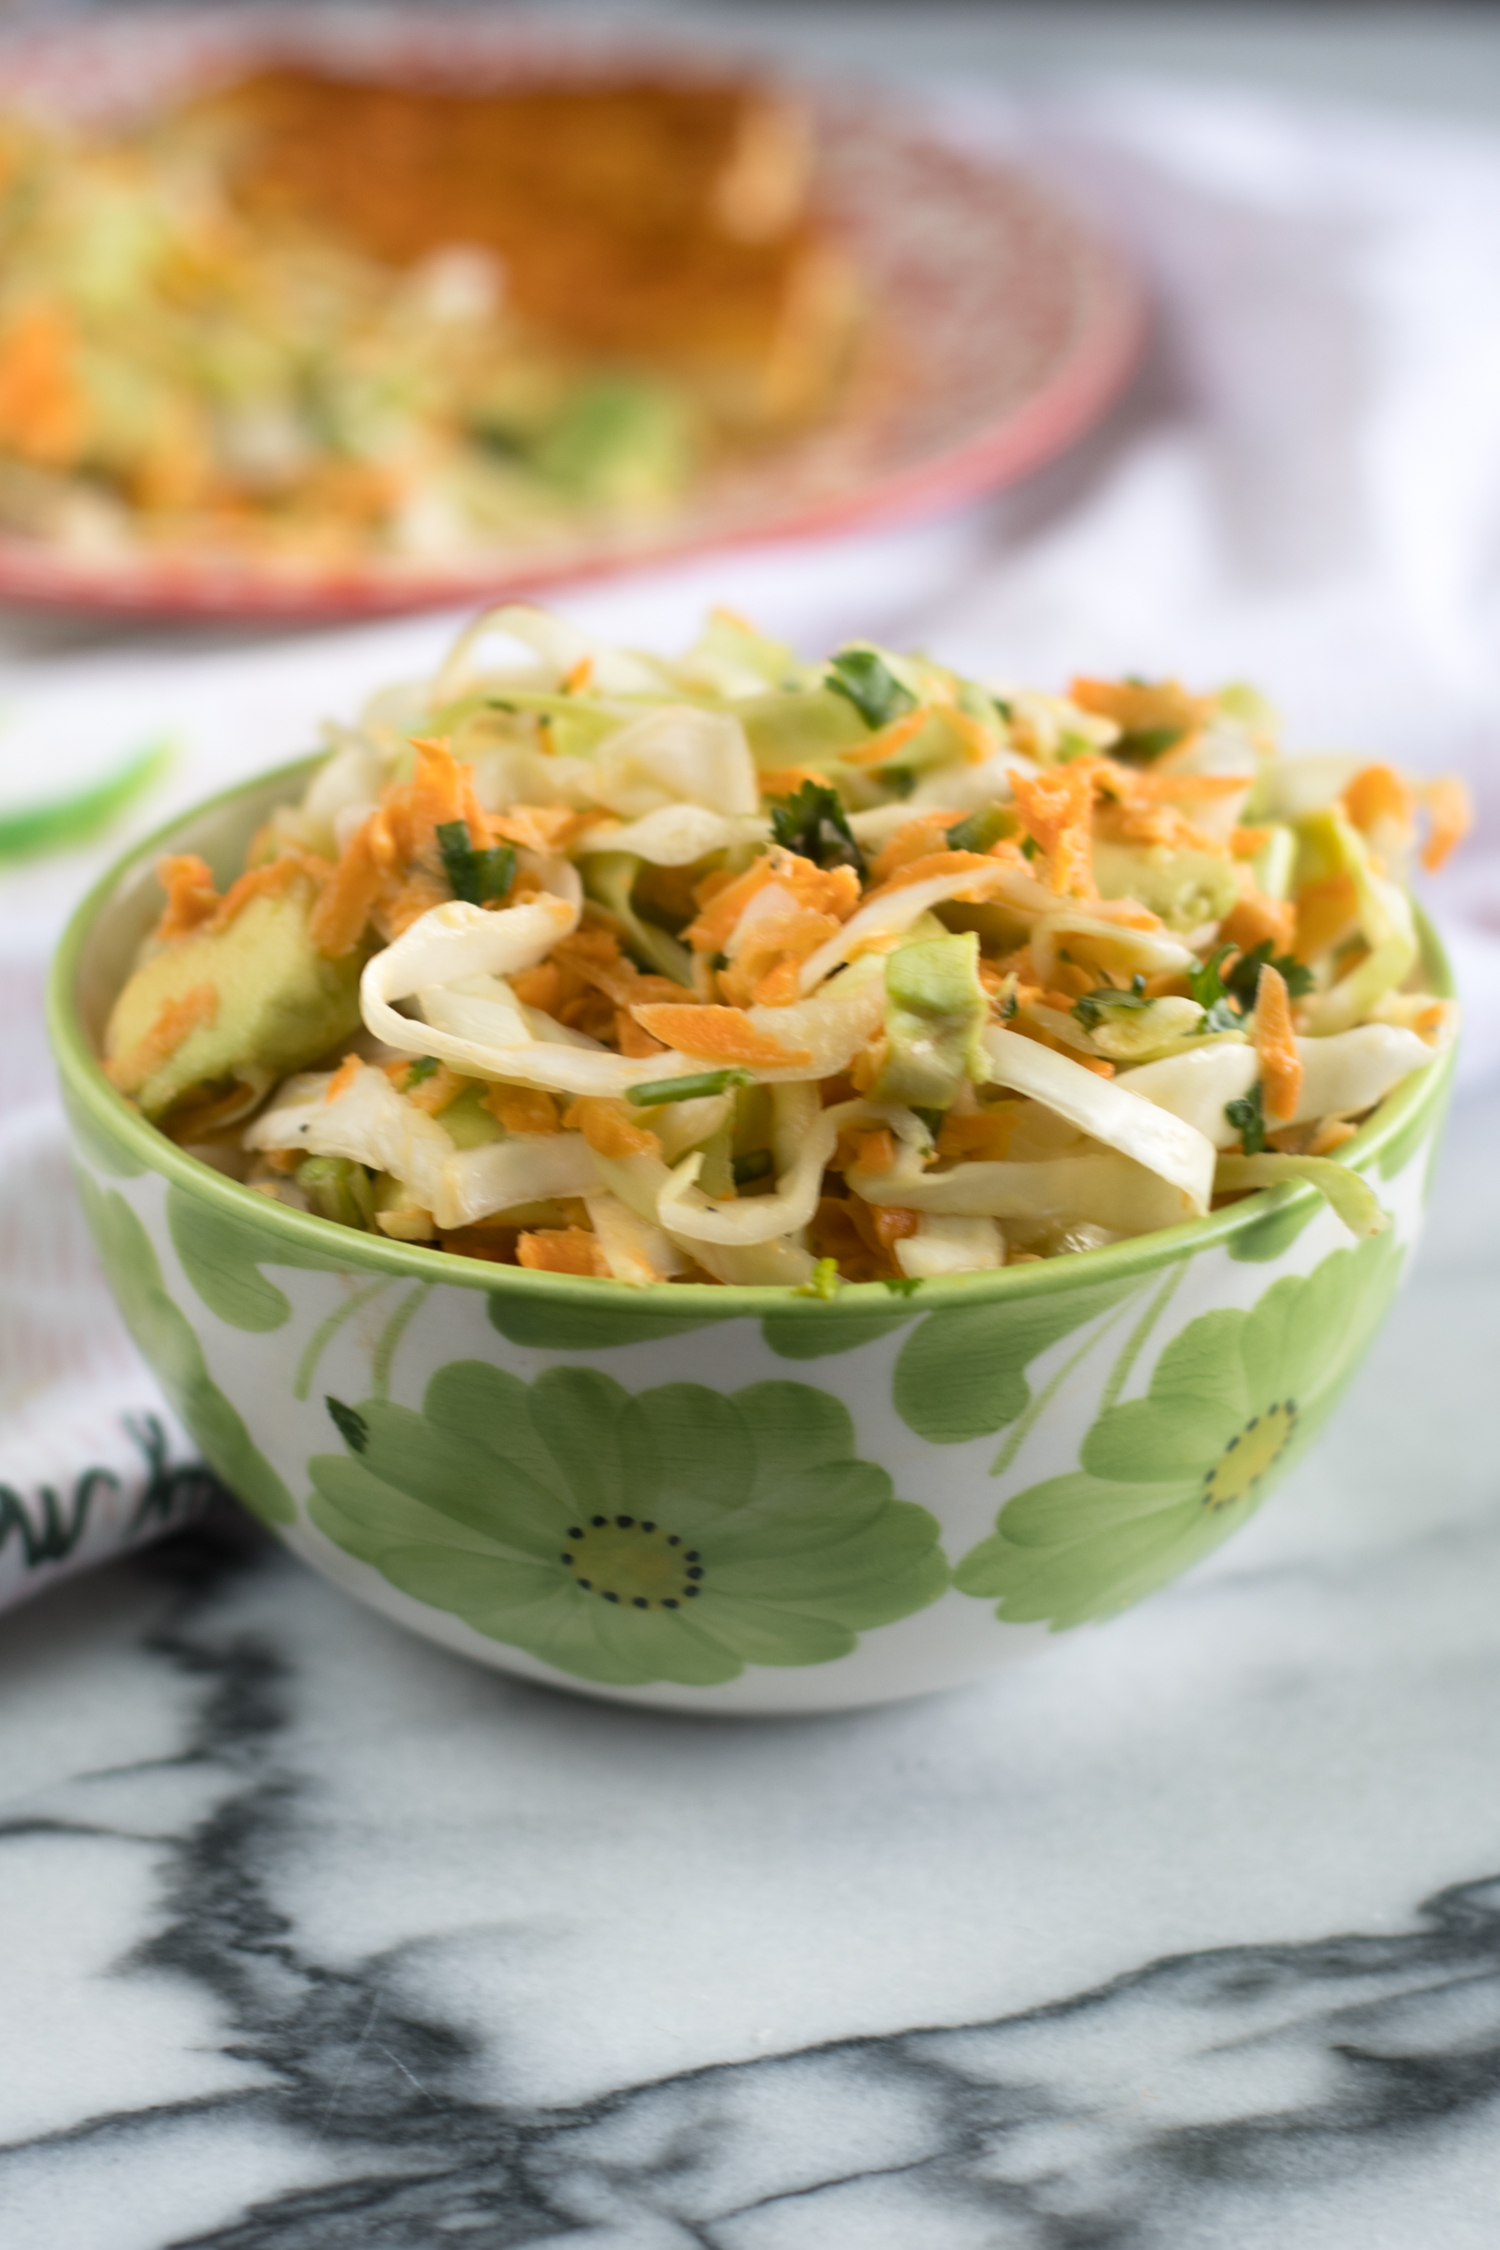 A flavorful cabbage and avocado salad. Naturally Vegan & GlutenFree!